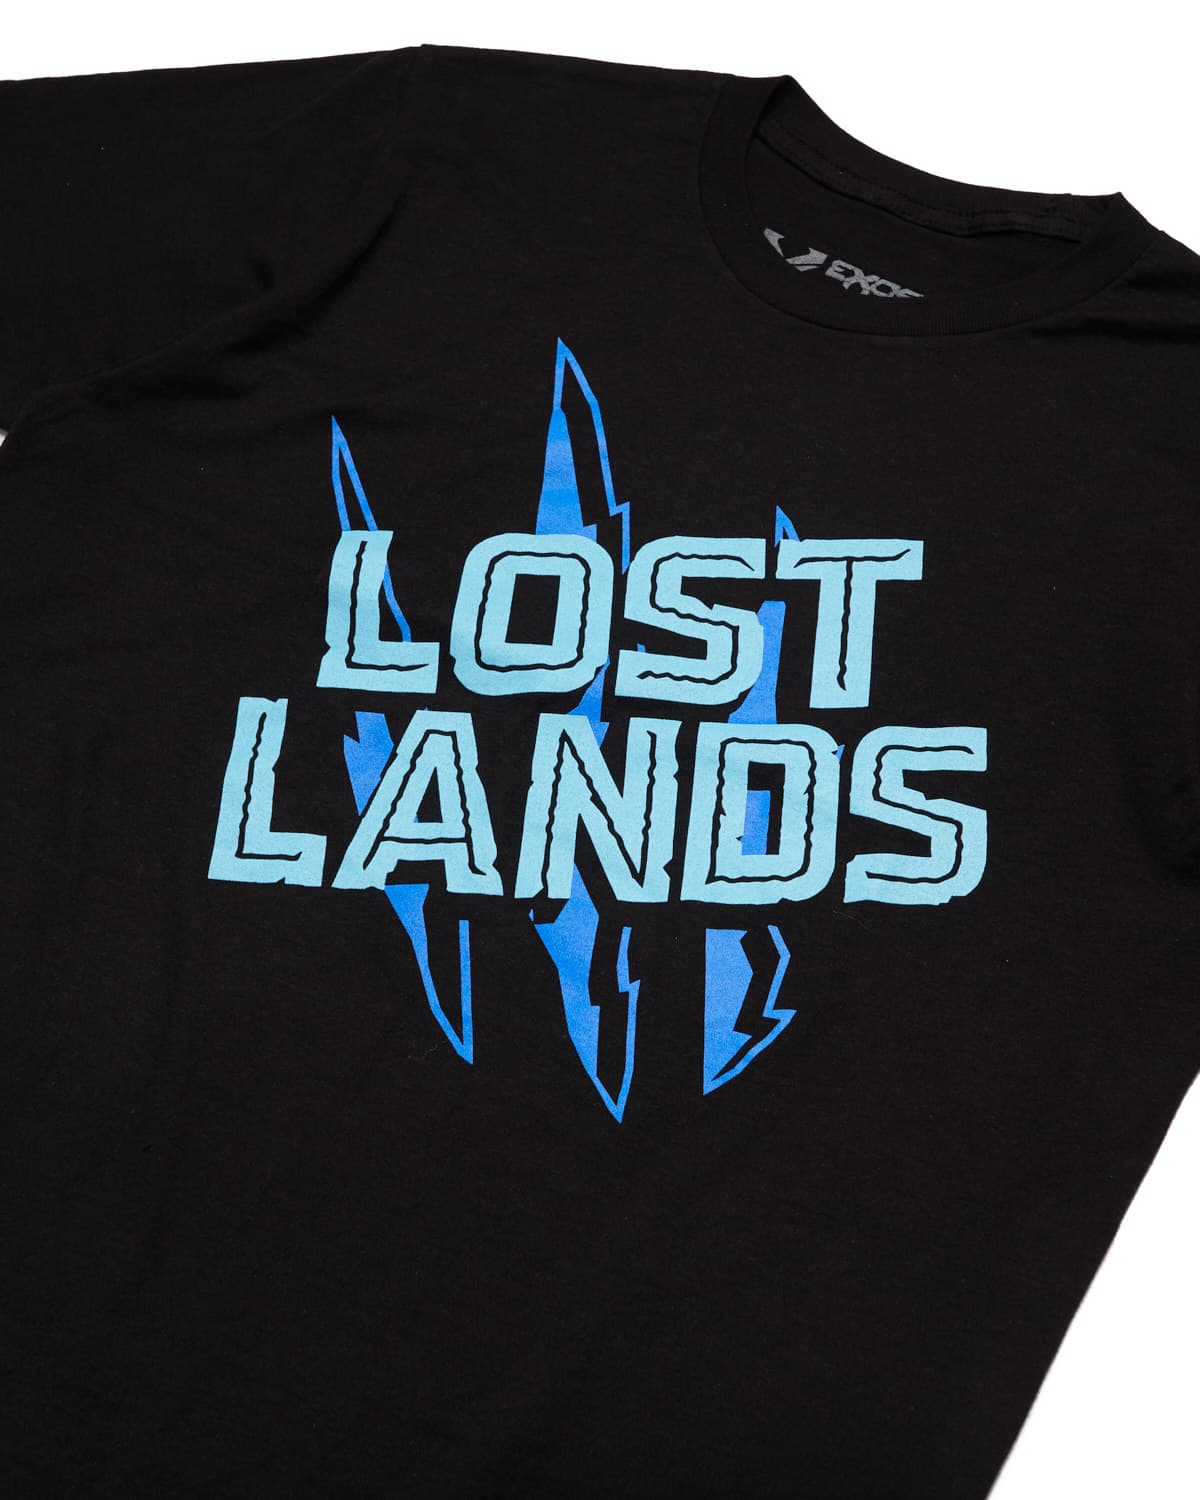 Lost Lands 'Slasher' Tee - Black/Blue